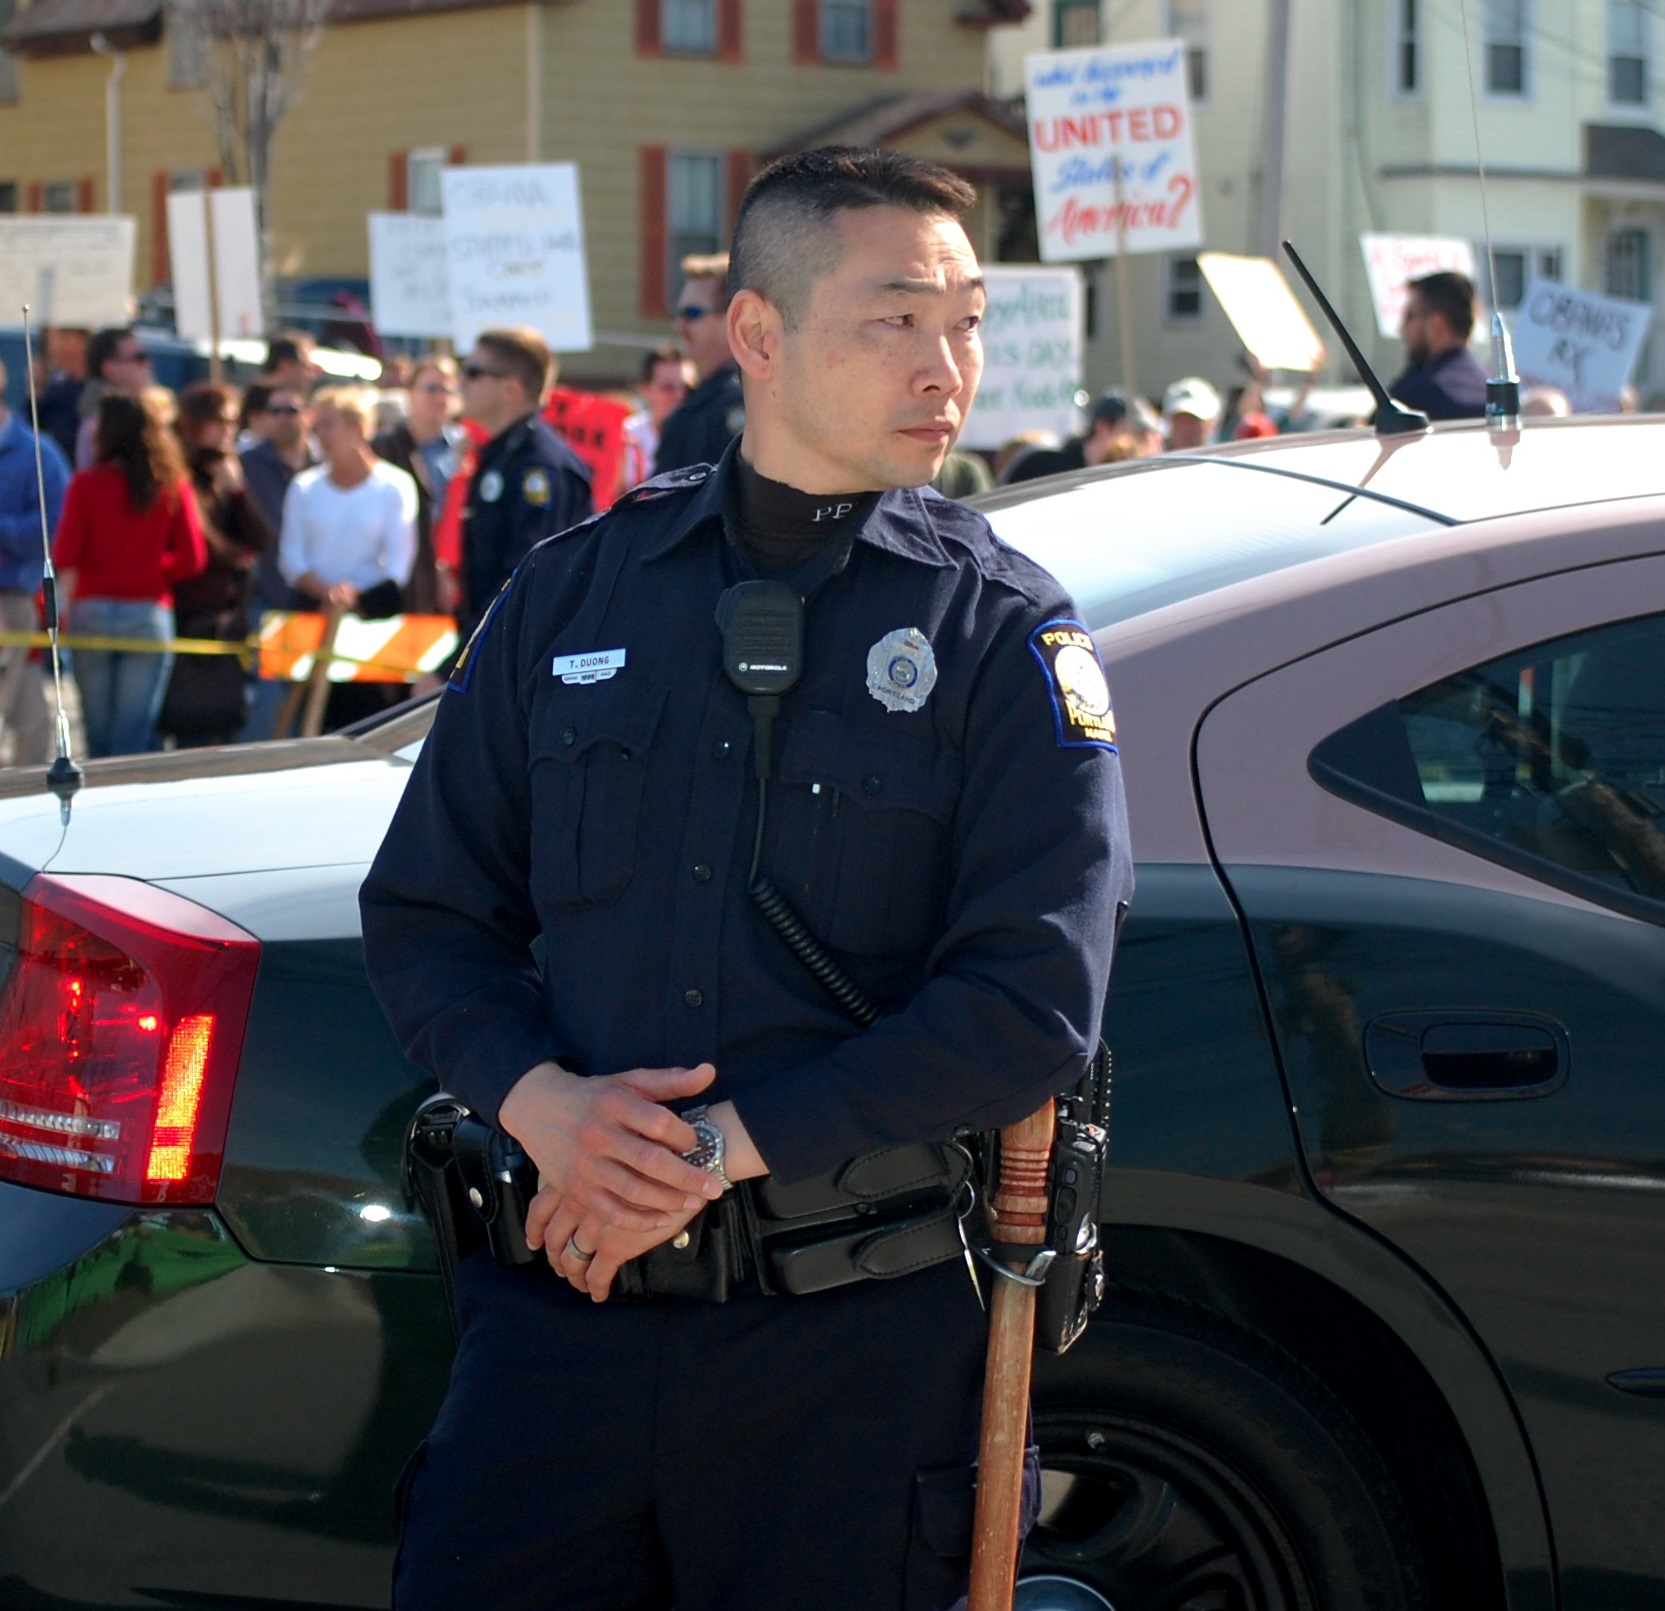 Officer Duong